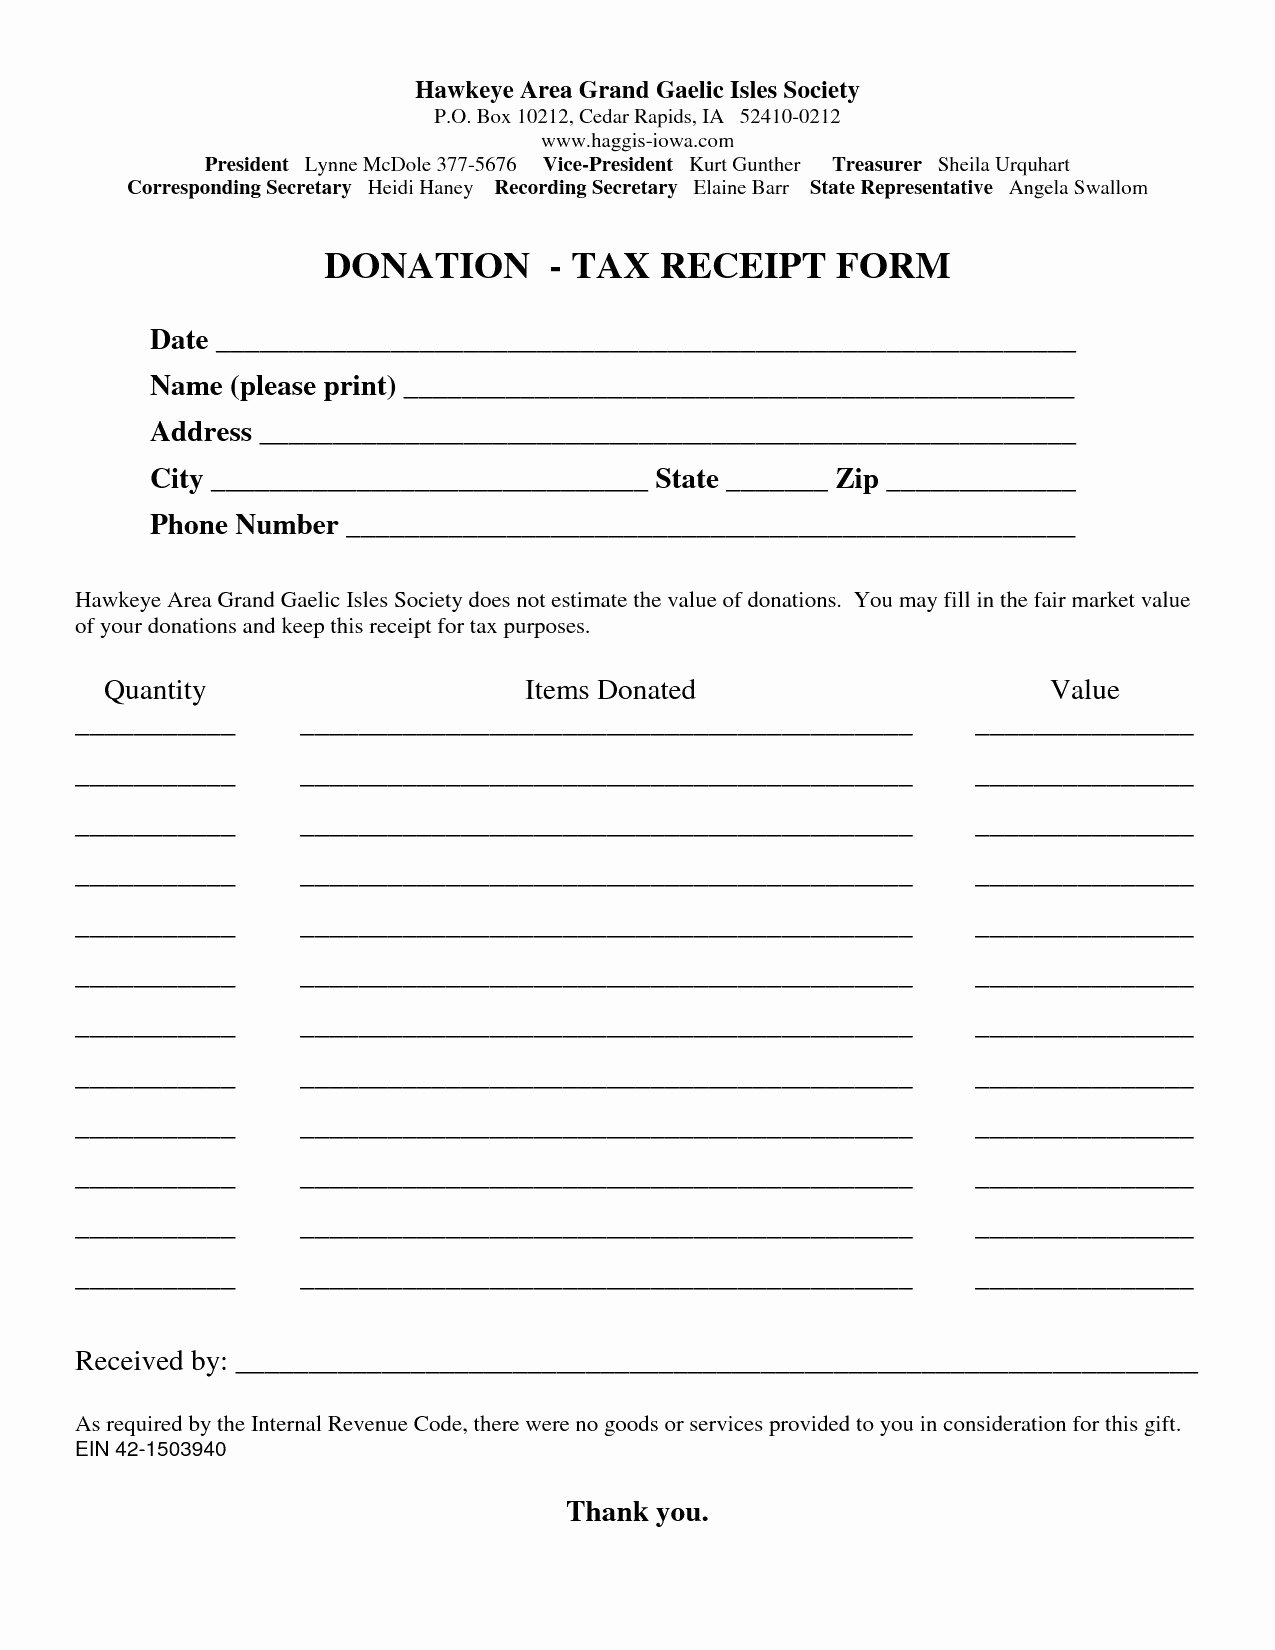 Tax Donation form Template Fresh Donation Receipt Letter Template 2018 Professional Tax